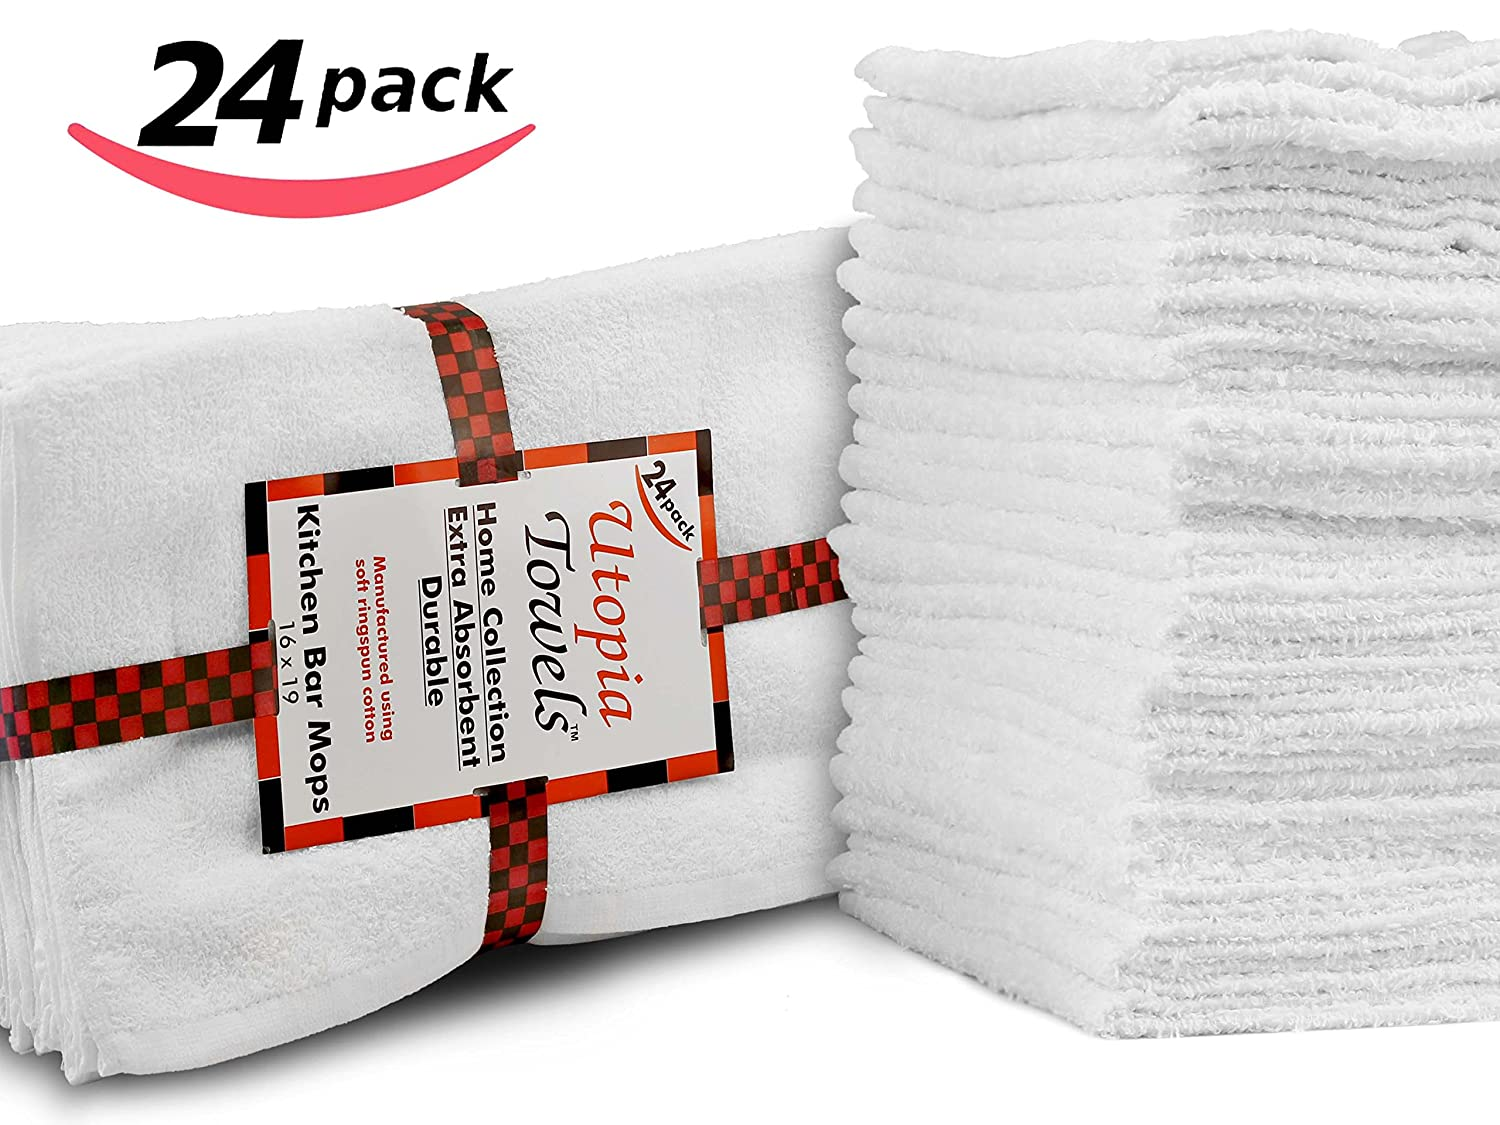 "Restaurant-Kitchen-Hotel Bar Mop Cleaning Towels - 24 Pack, White Cotton, Professional Grade (16"" x 19"") by Utopia Kitchen"